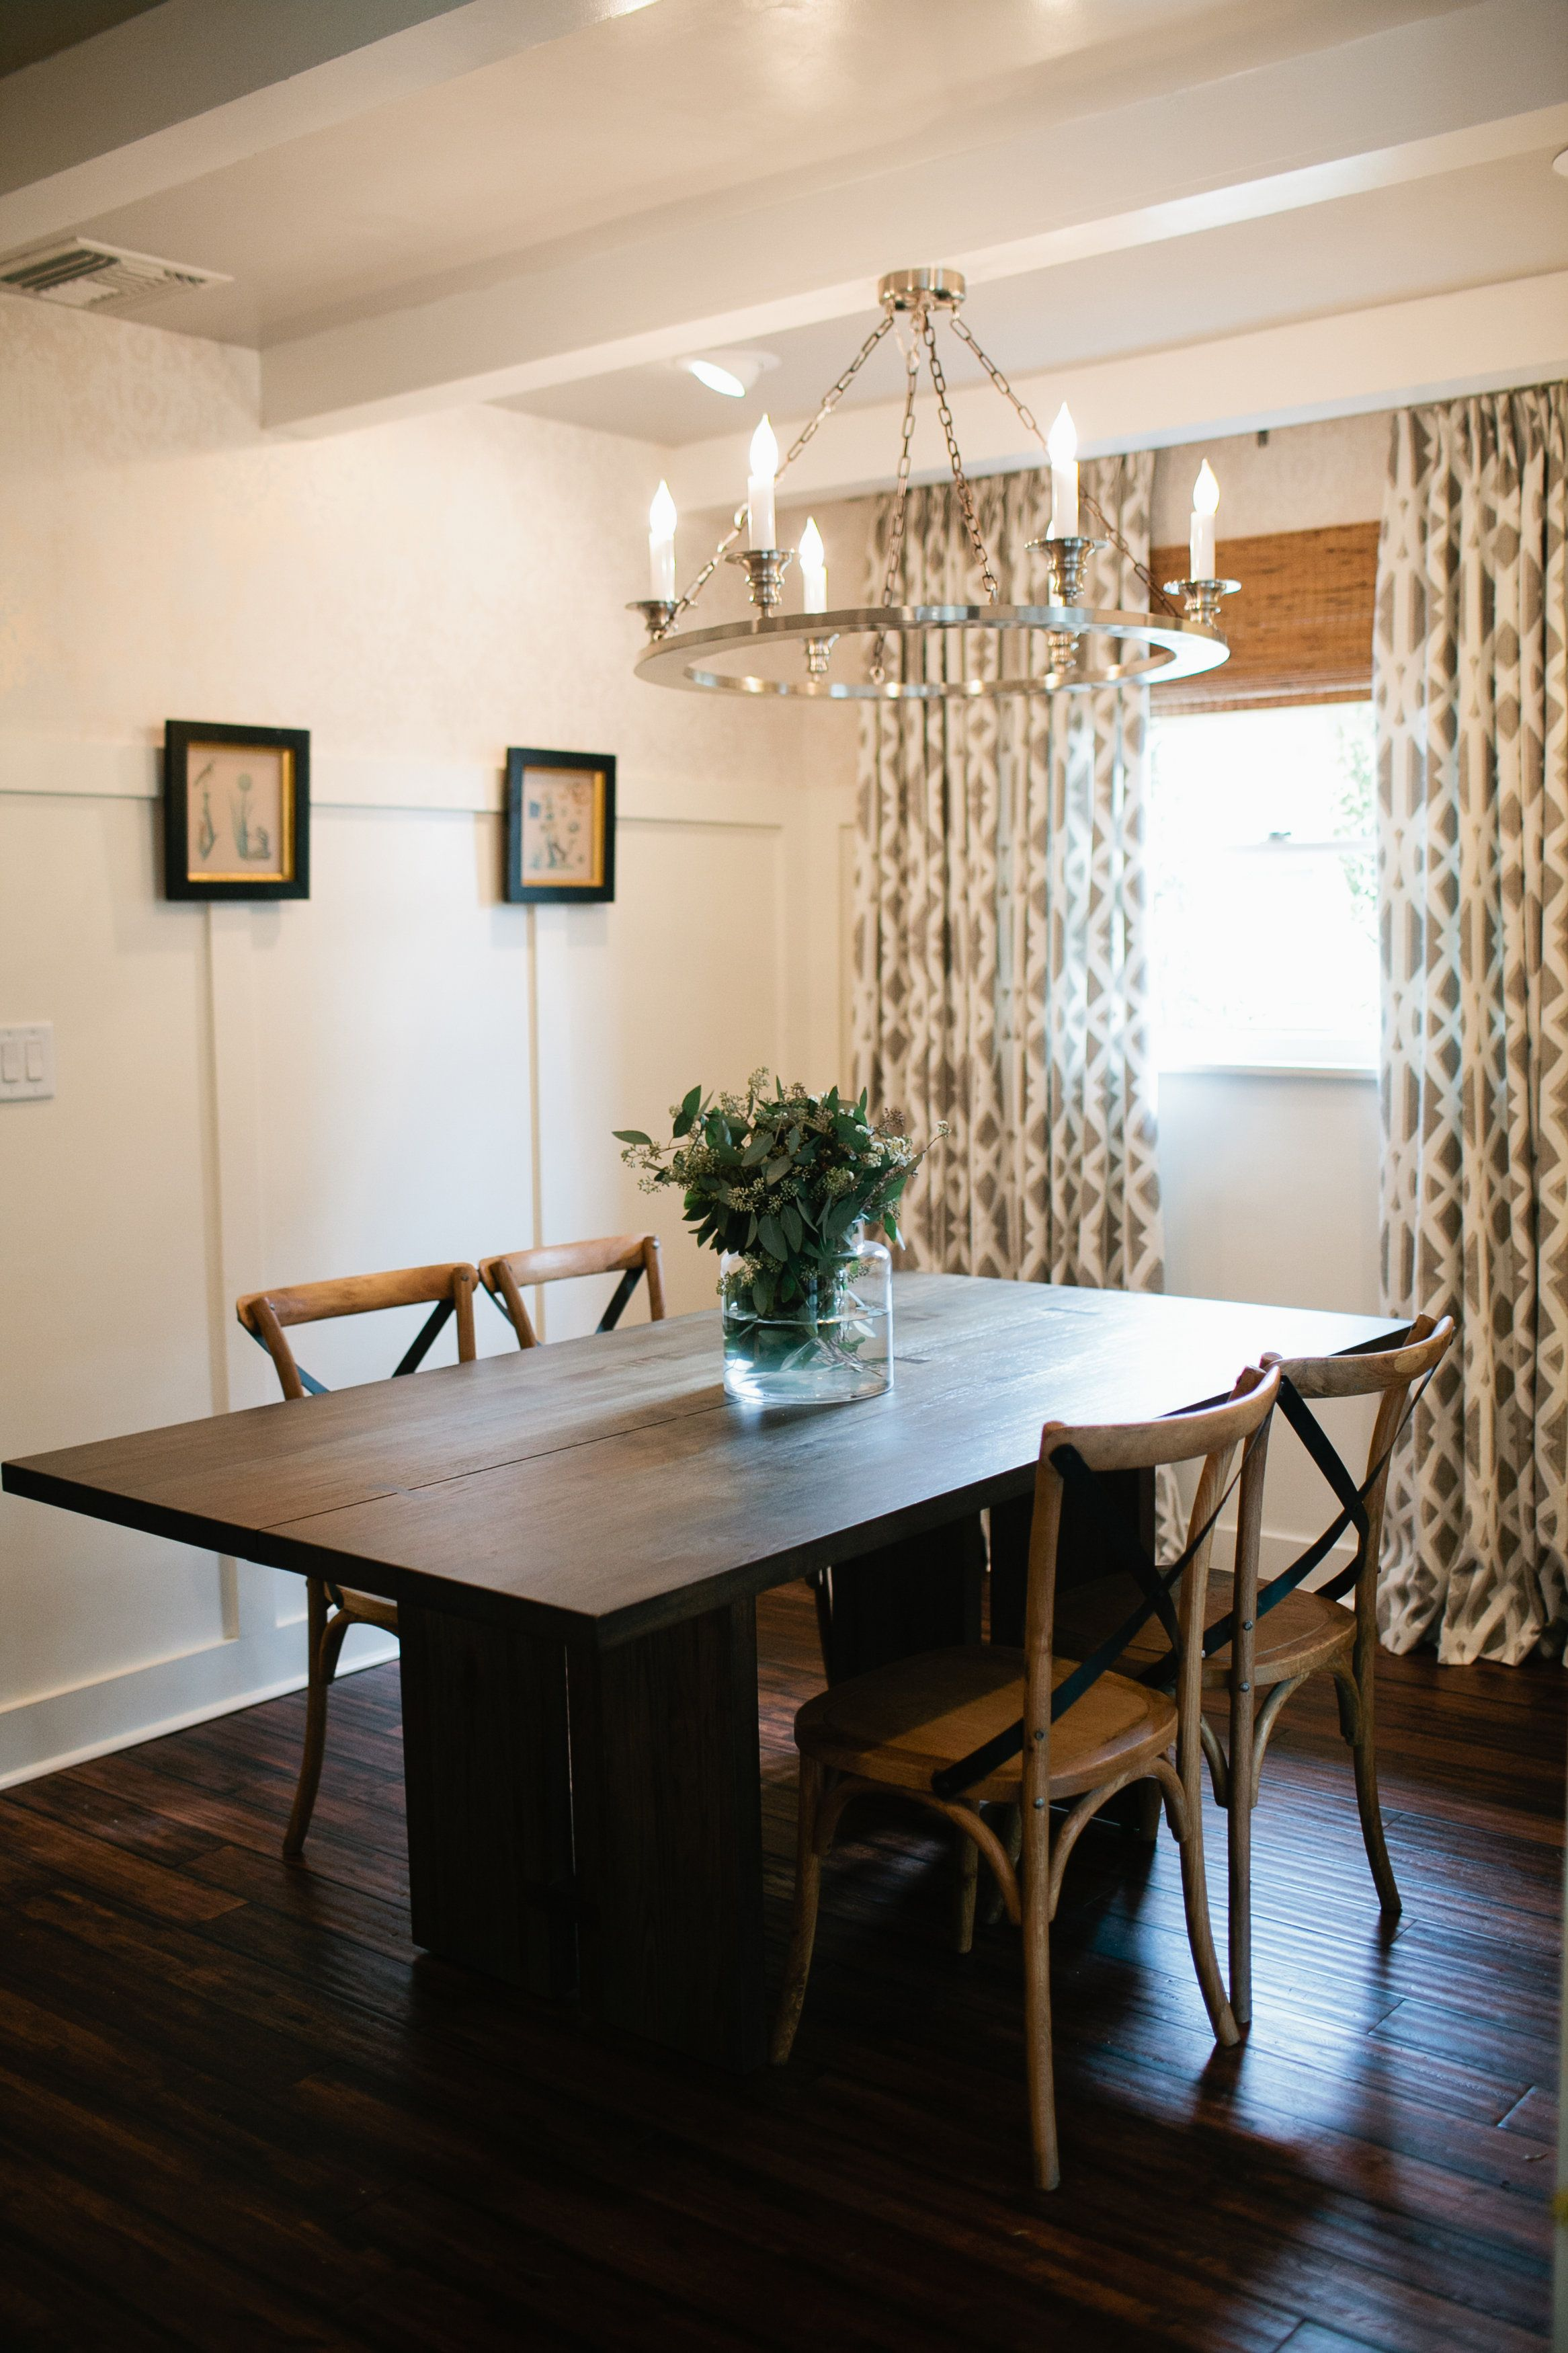 28 Simple Dining Room Ideas For A Stunning Inspiration: Lukas Built This Minimalist Table And Added The Perfect